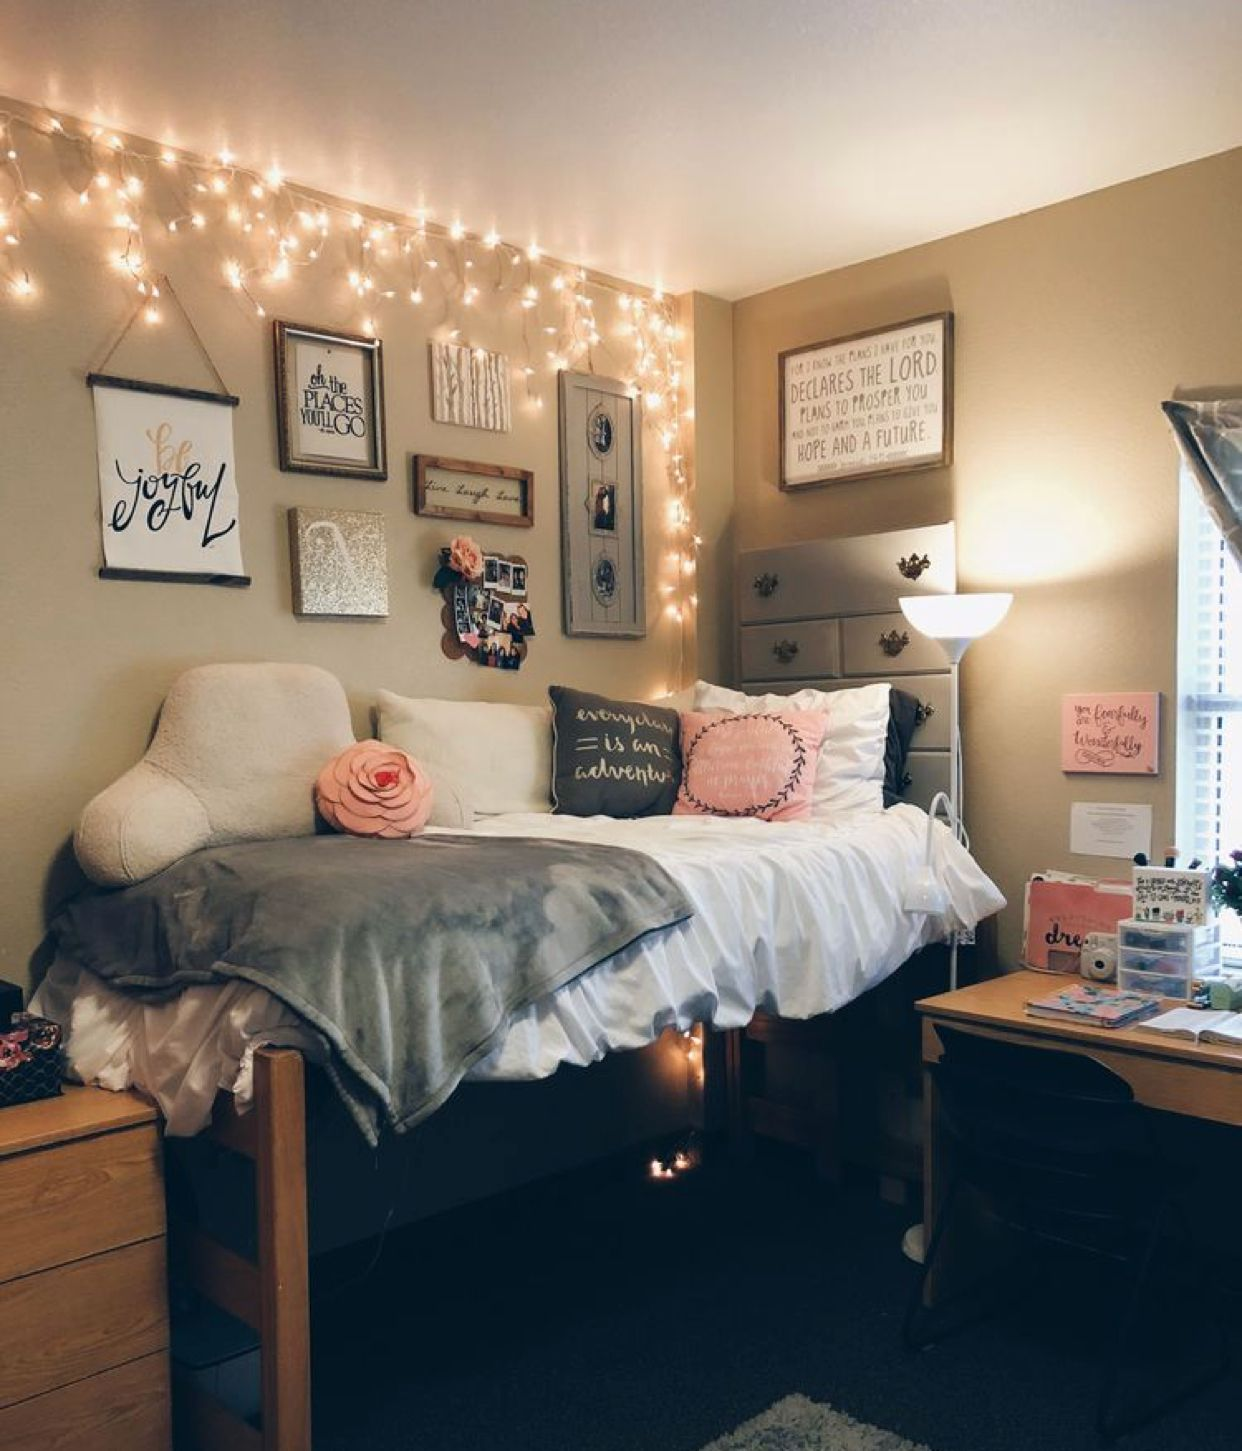 Pin by Tatyana on College ☆ | Dorm room designs, Dorm room ...